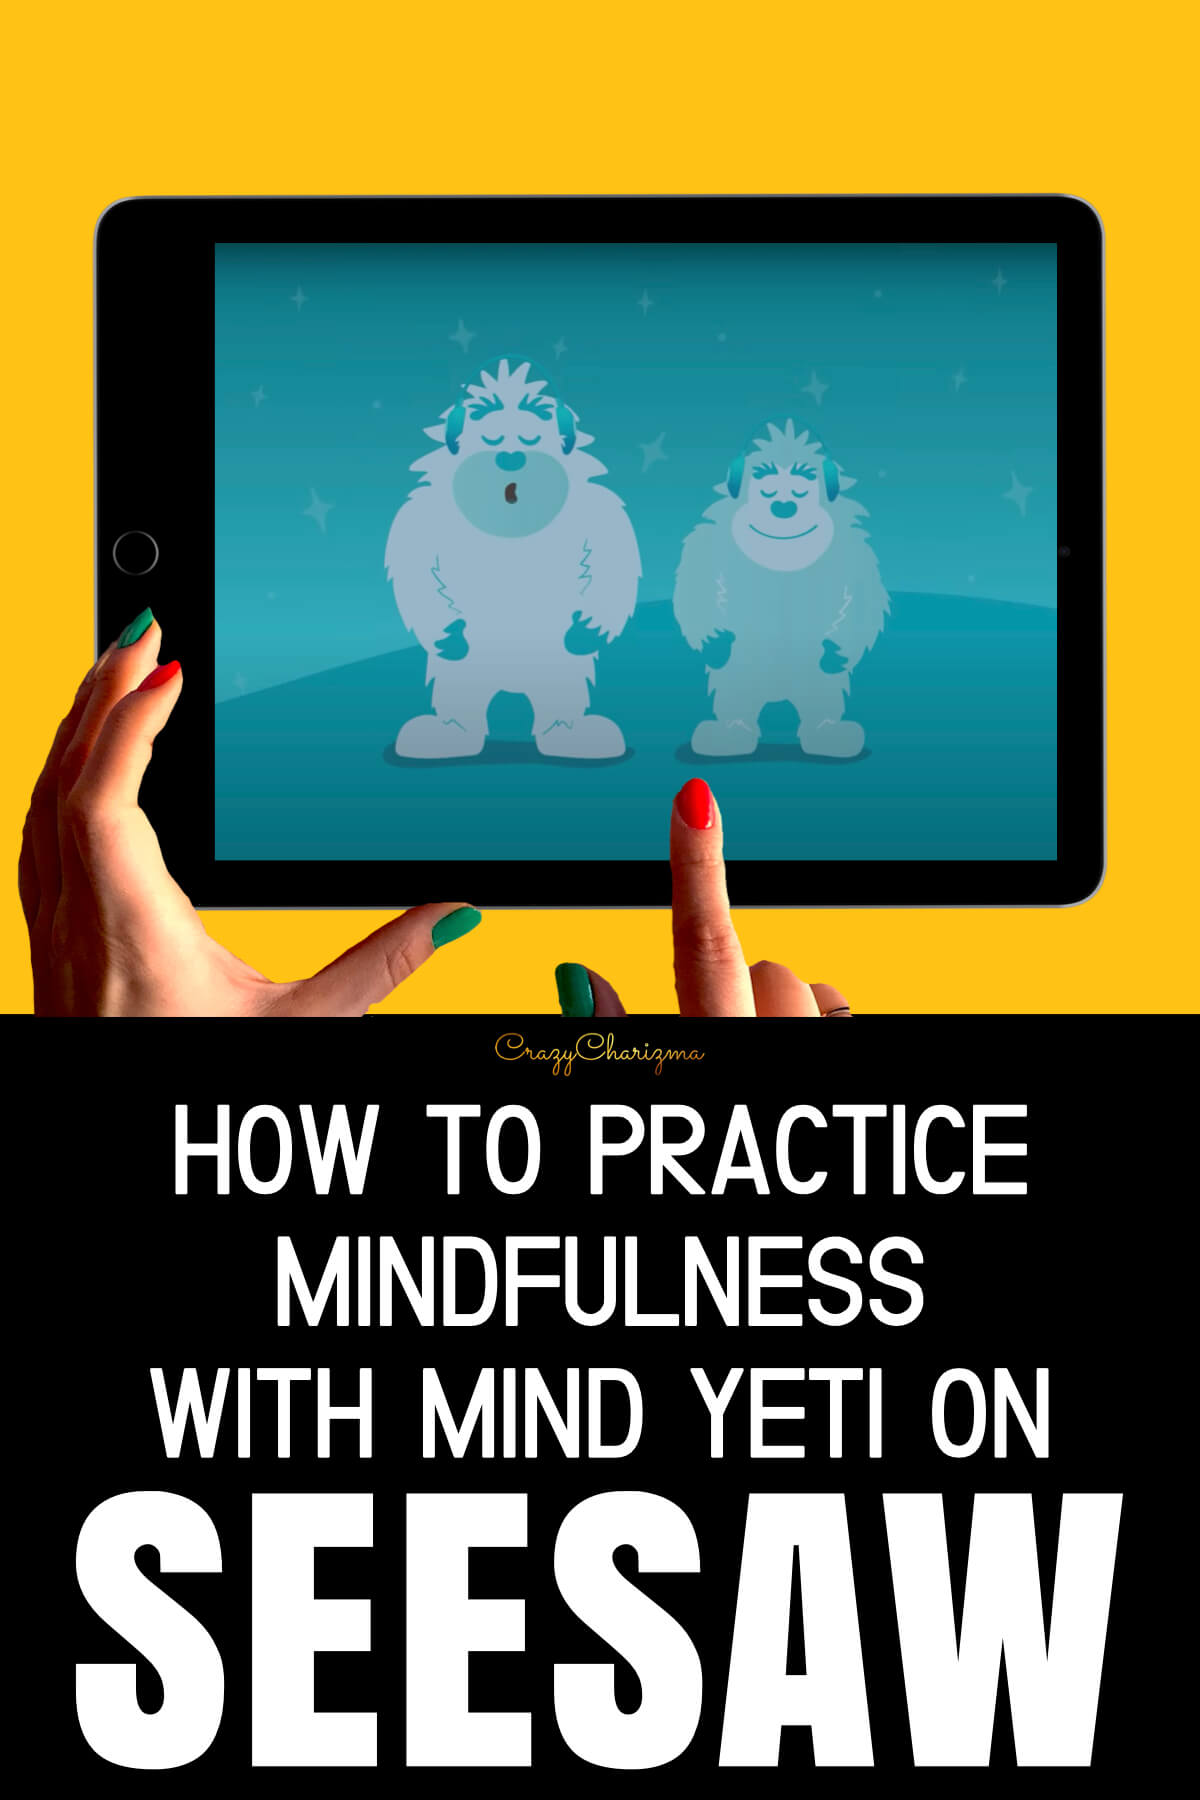 It's so important to teach students how to practice mindfulness in the classroom. It's even more important to learn how to do that during distance learning. With the videos and audio sessions from Mind Yeti, as well as activities in Seesaw, teachers and students can create a mindfulness practice together.